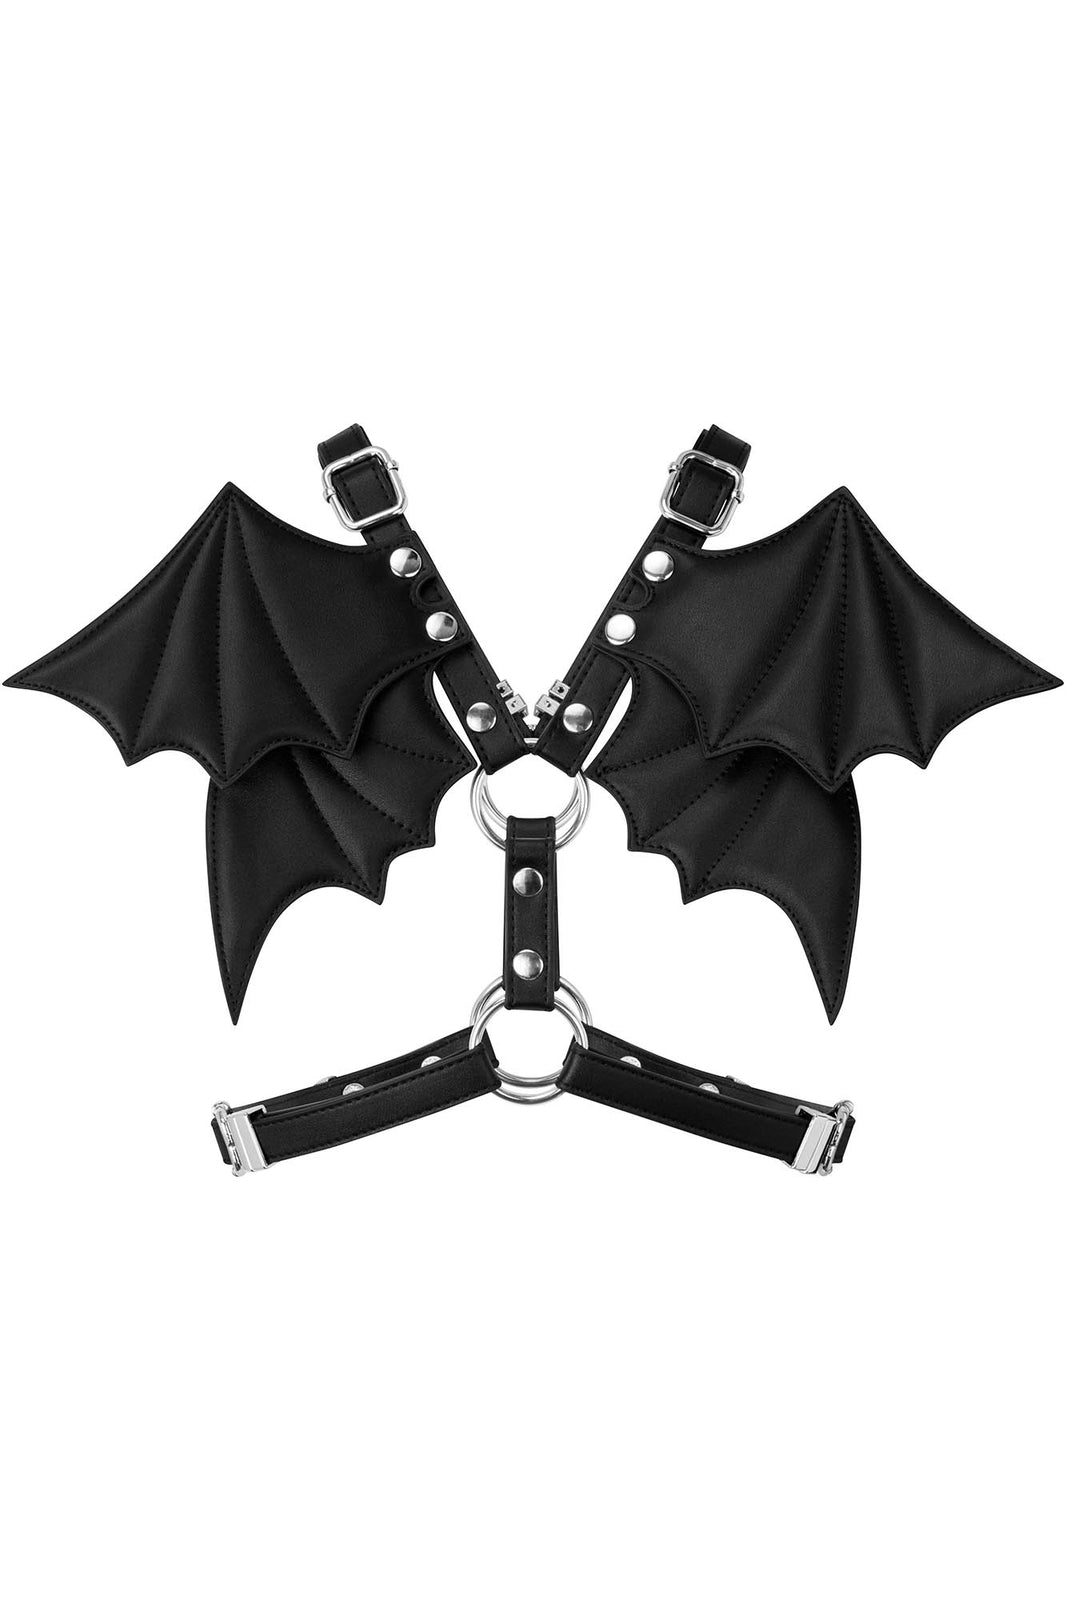 Fly Away Harness